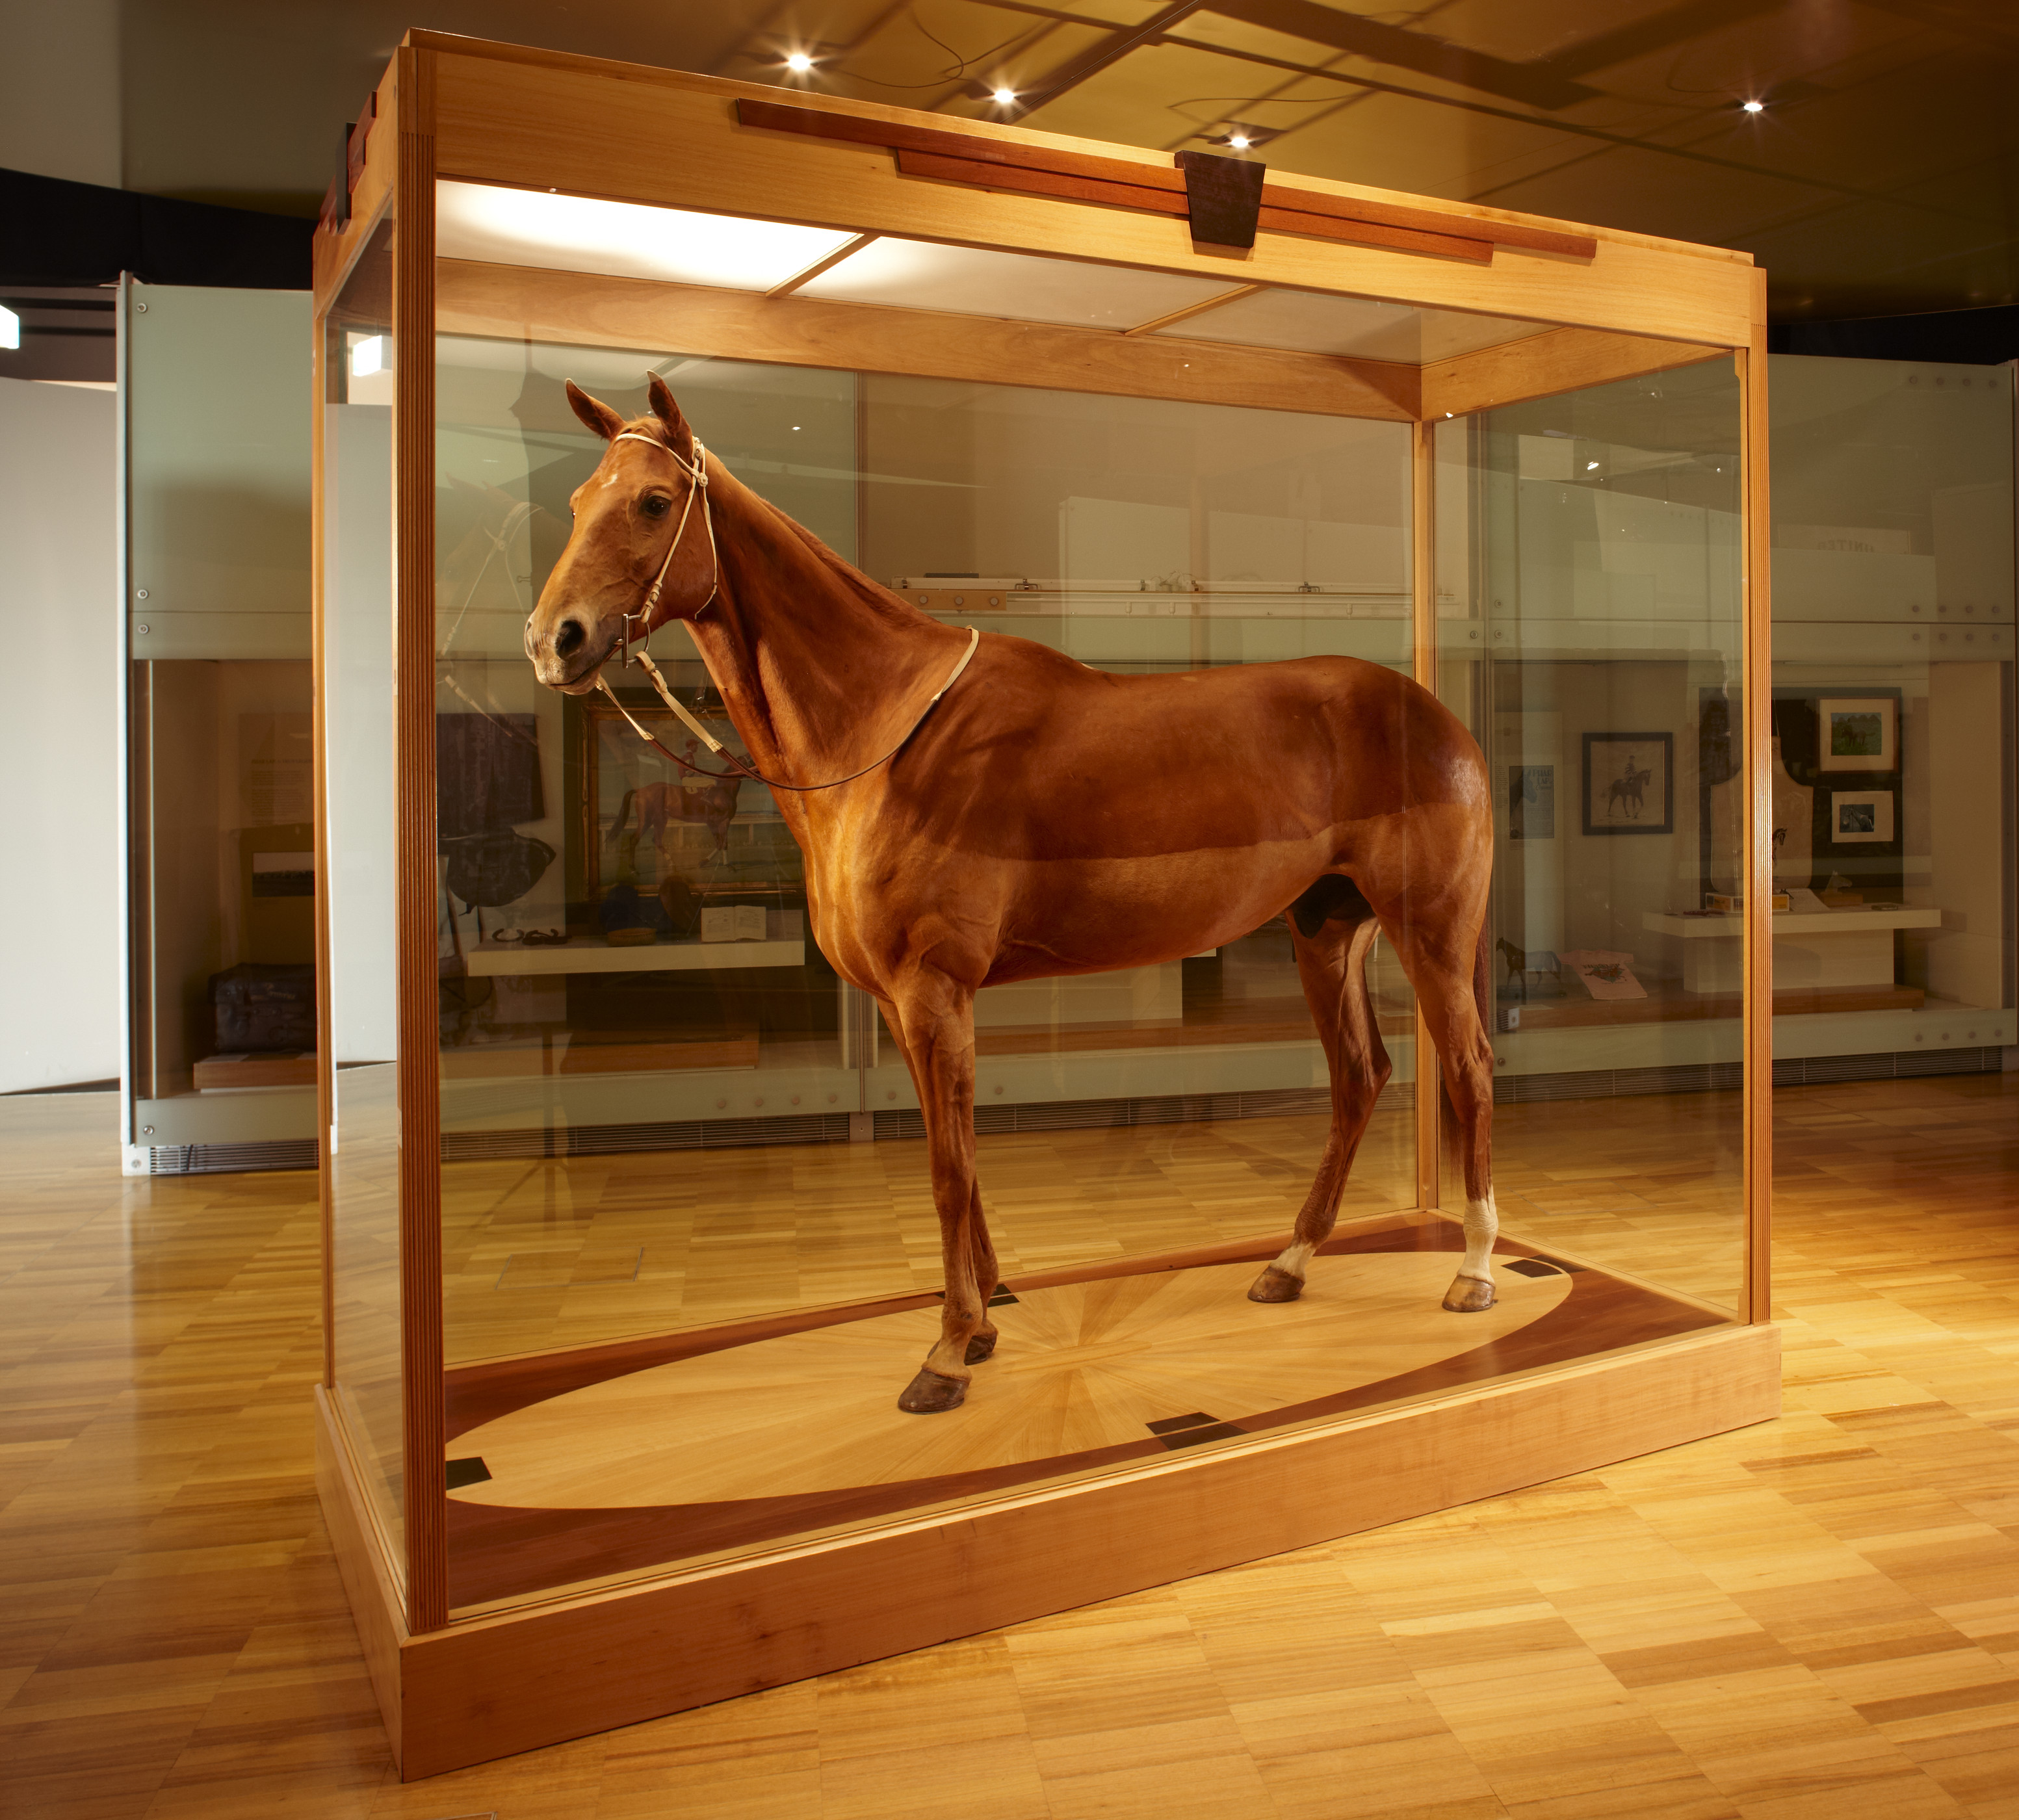 Phar Lap's hide on display in the Melbourne Museum